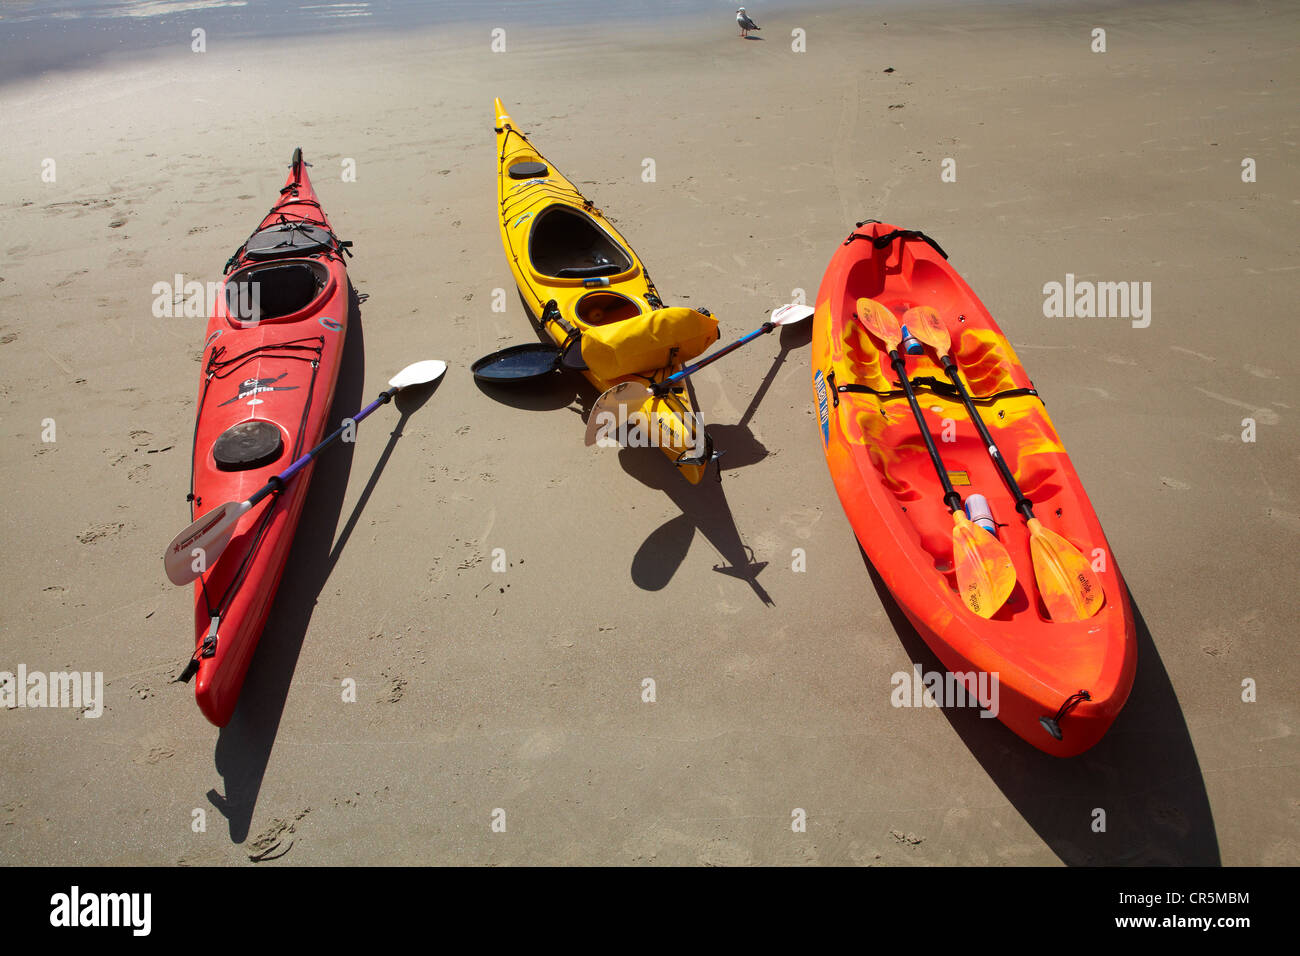 Kayaks on beach by Doctors Point, north of Dunedin, South Island, New Zealand Stock Photo